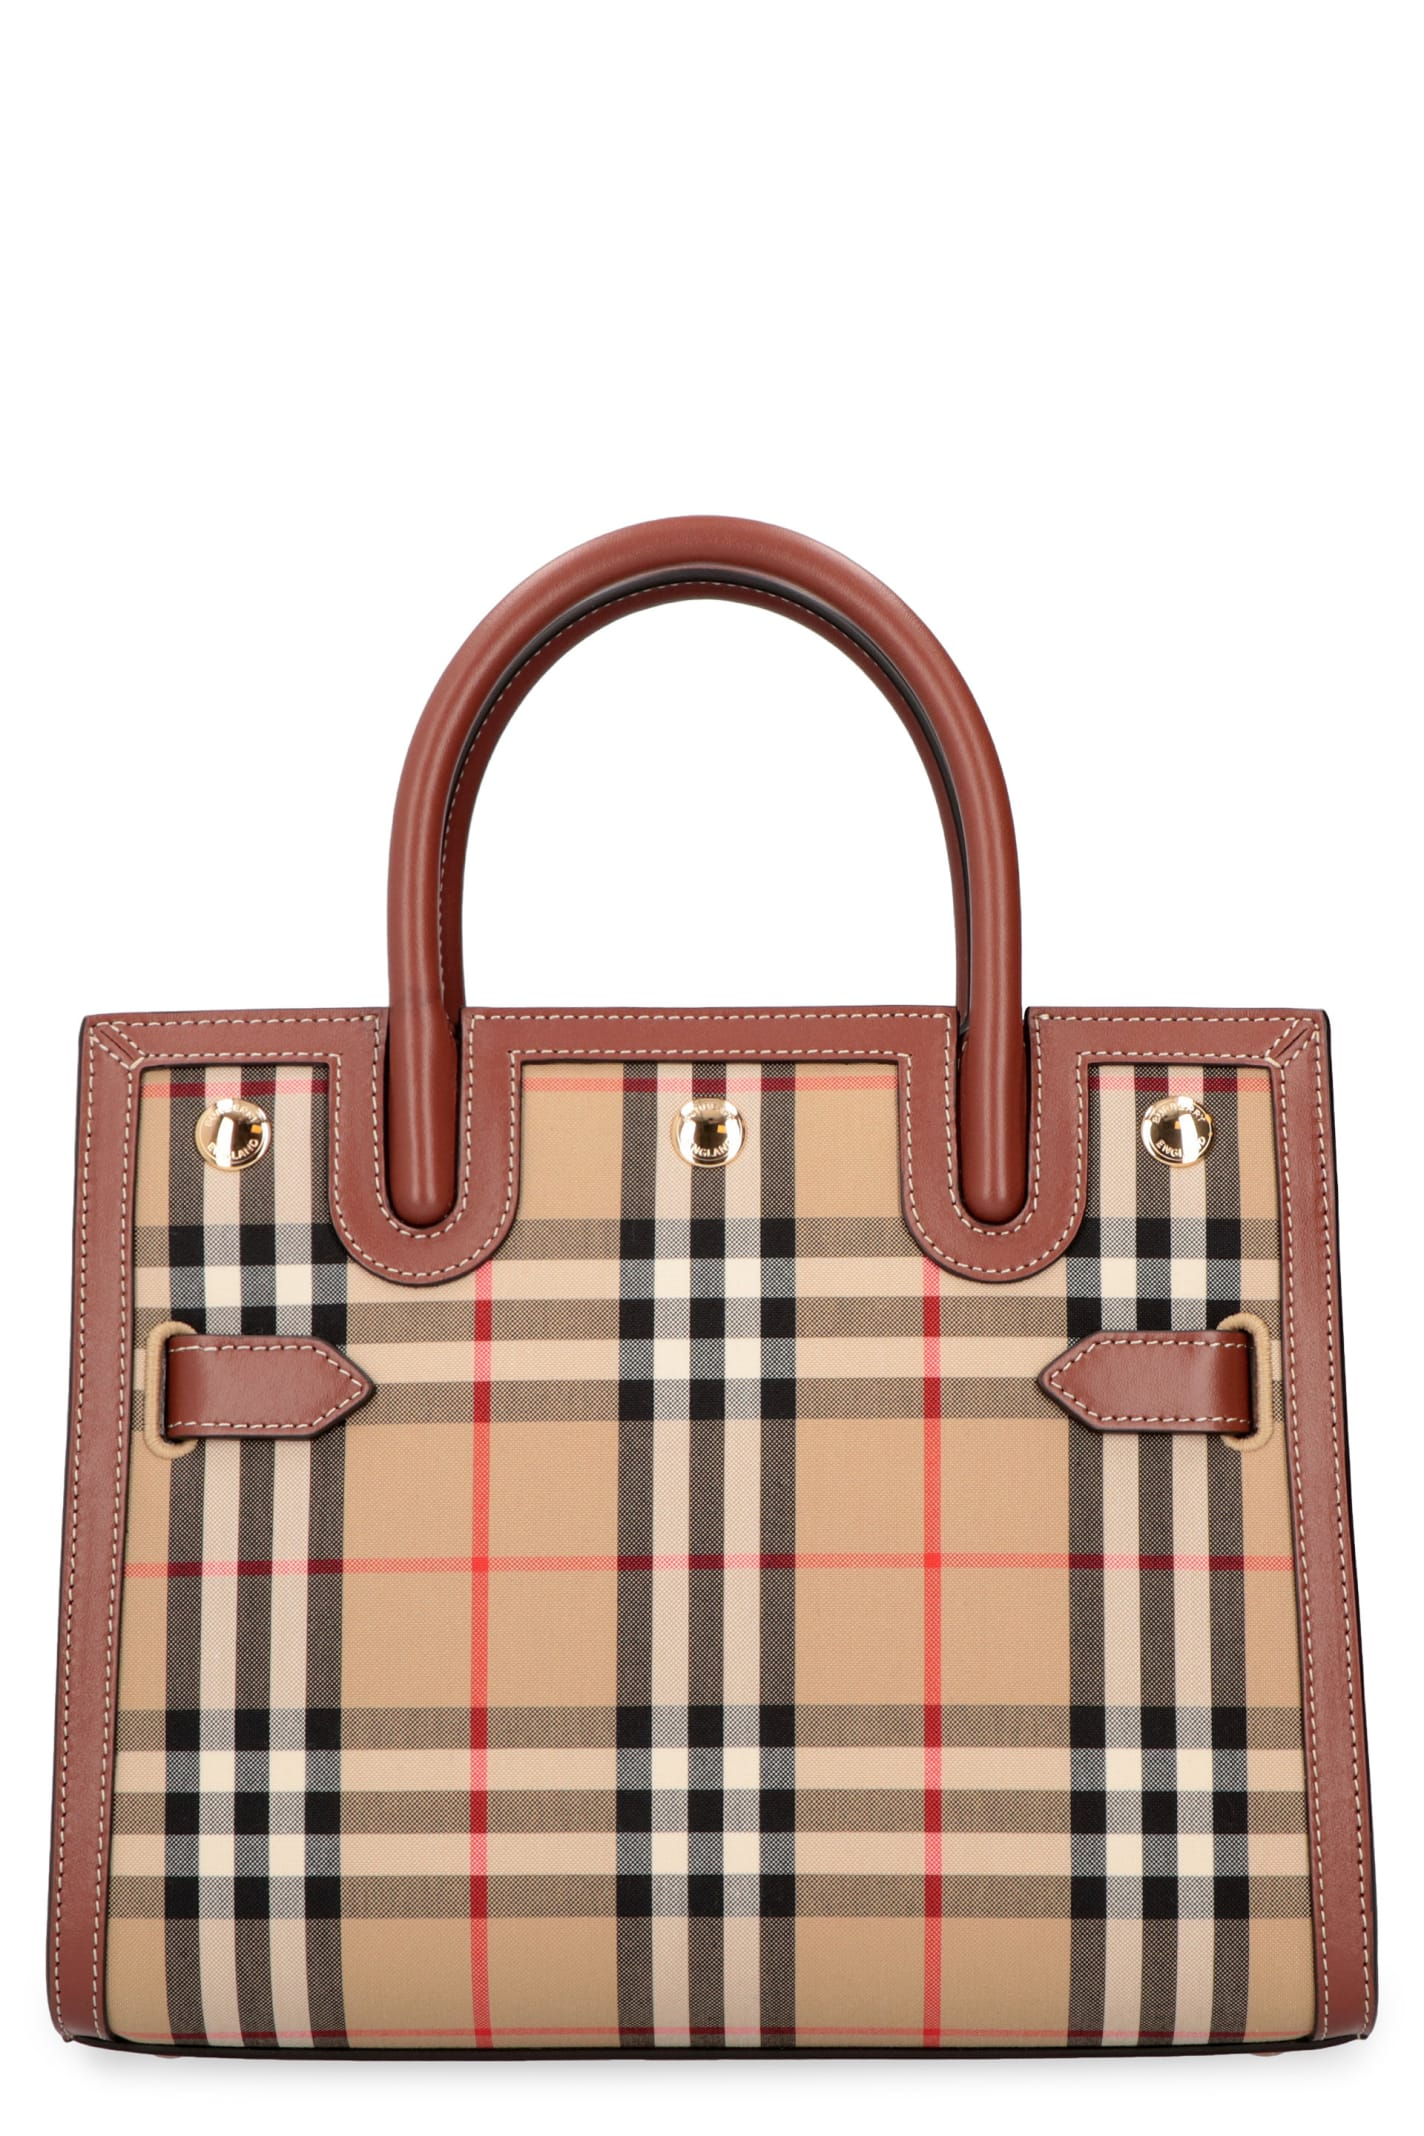 Burberry TITLE CHECKED CANVAS HANDBAG